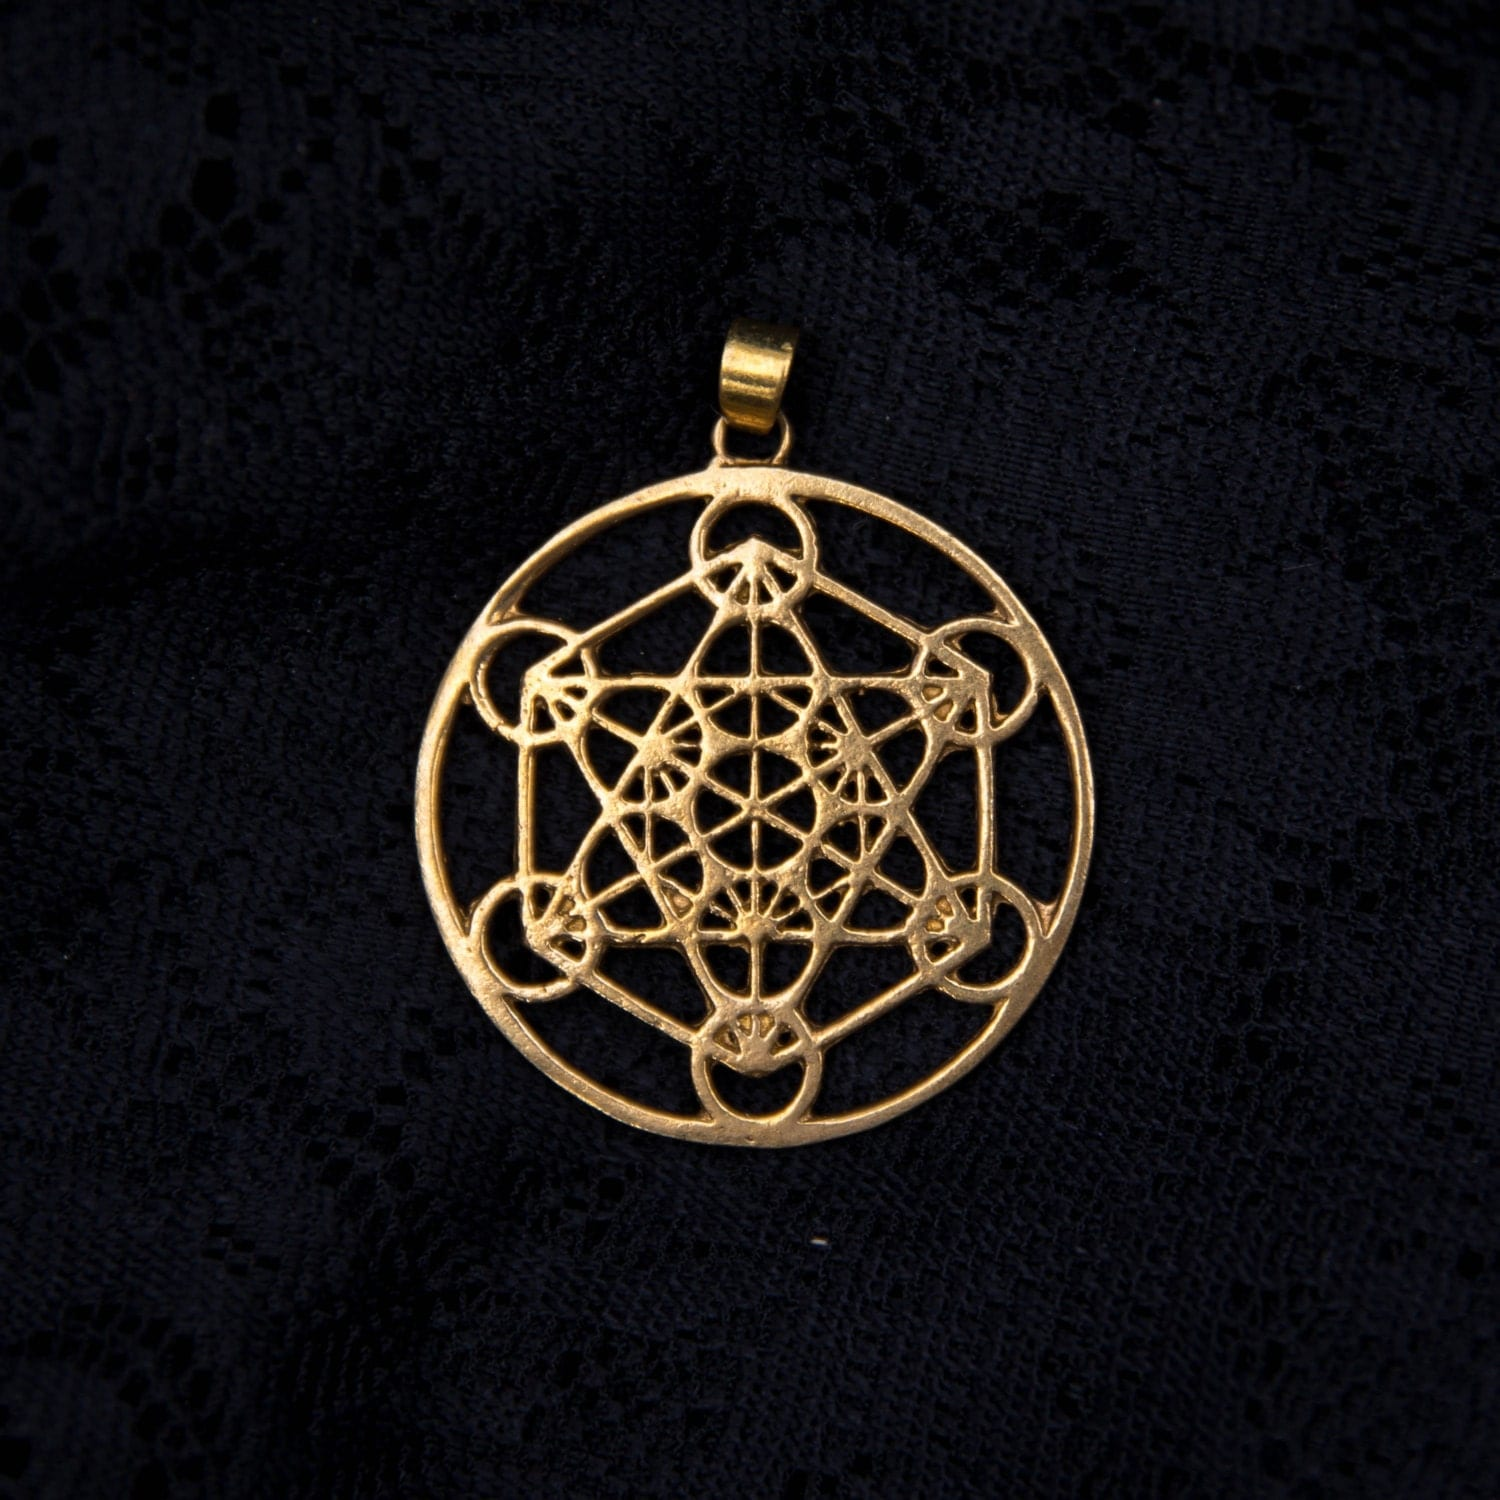 Metatrons cube brass pendant charm necklace sacred geometry for Metatron s cube jewelry